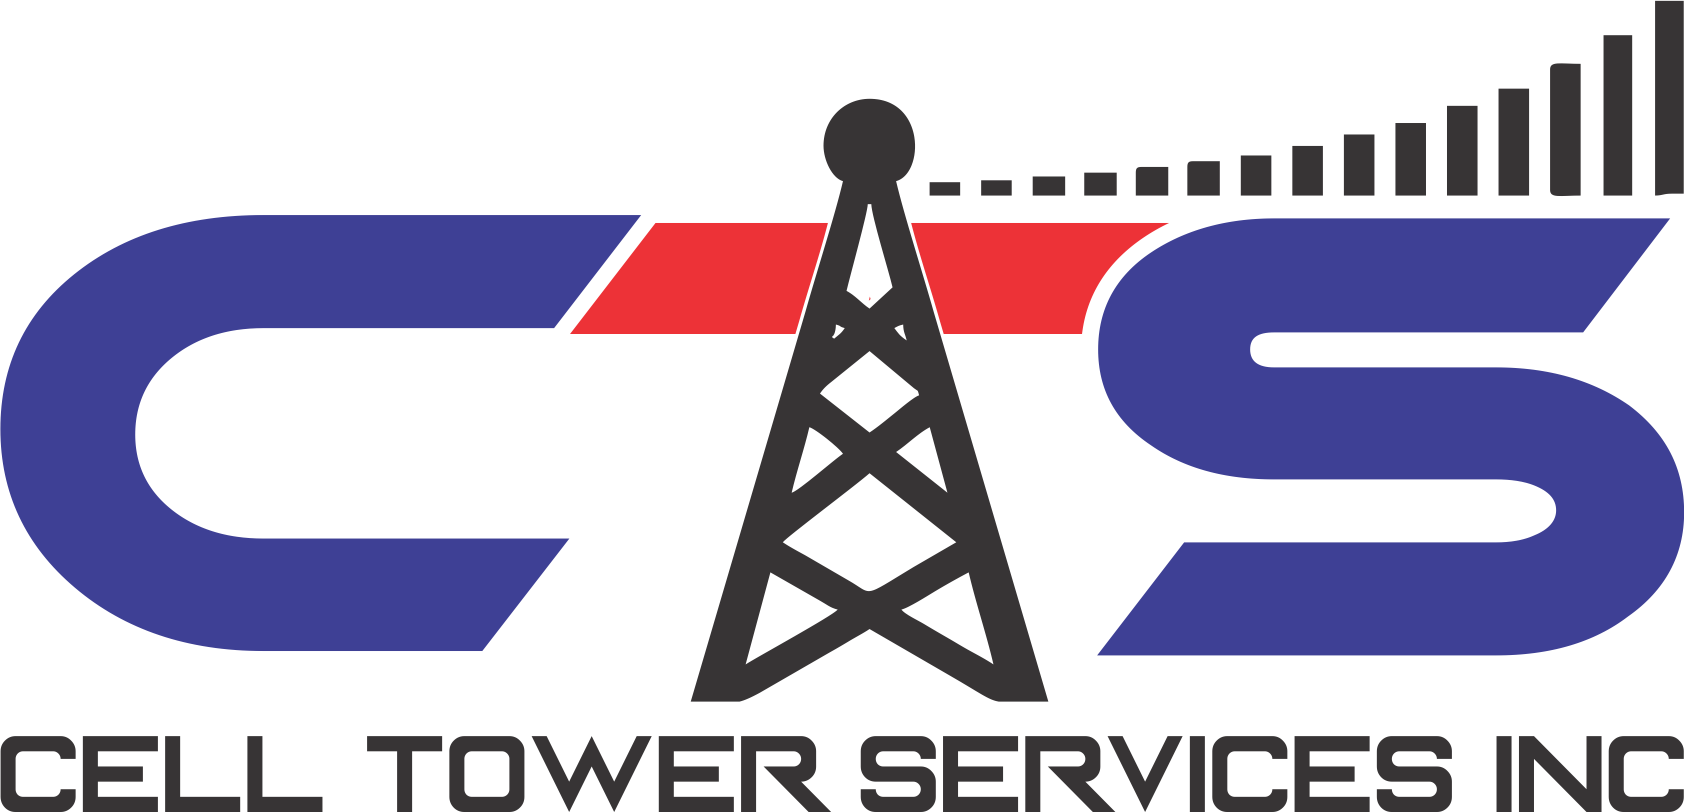 cell Tower services inc